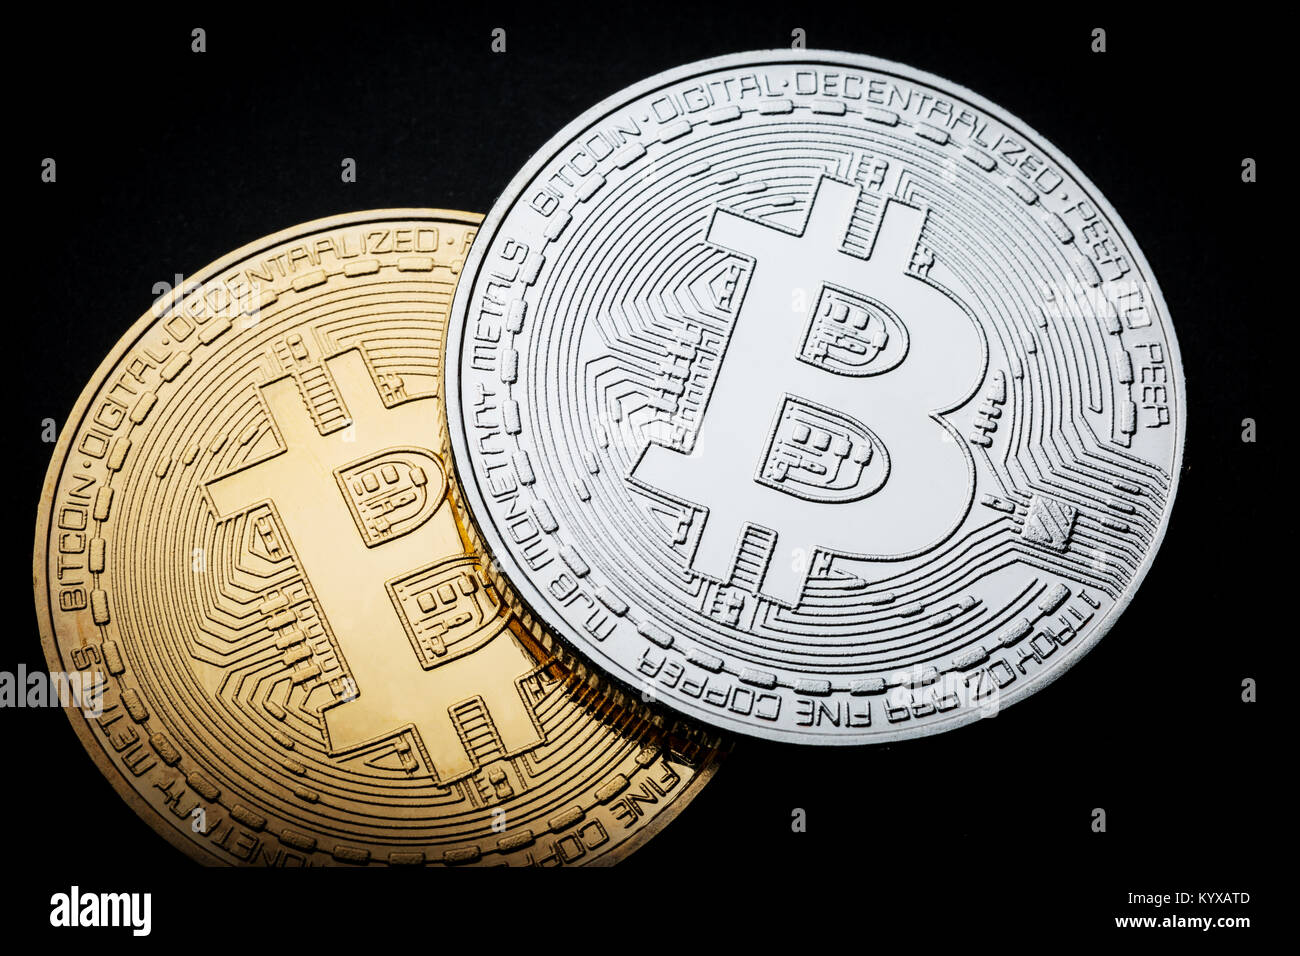 Black Bitcoin Stockfotos & Black Bitcoin Bilder - Alamy